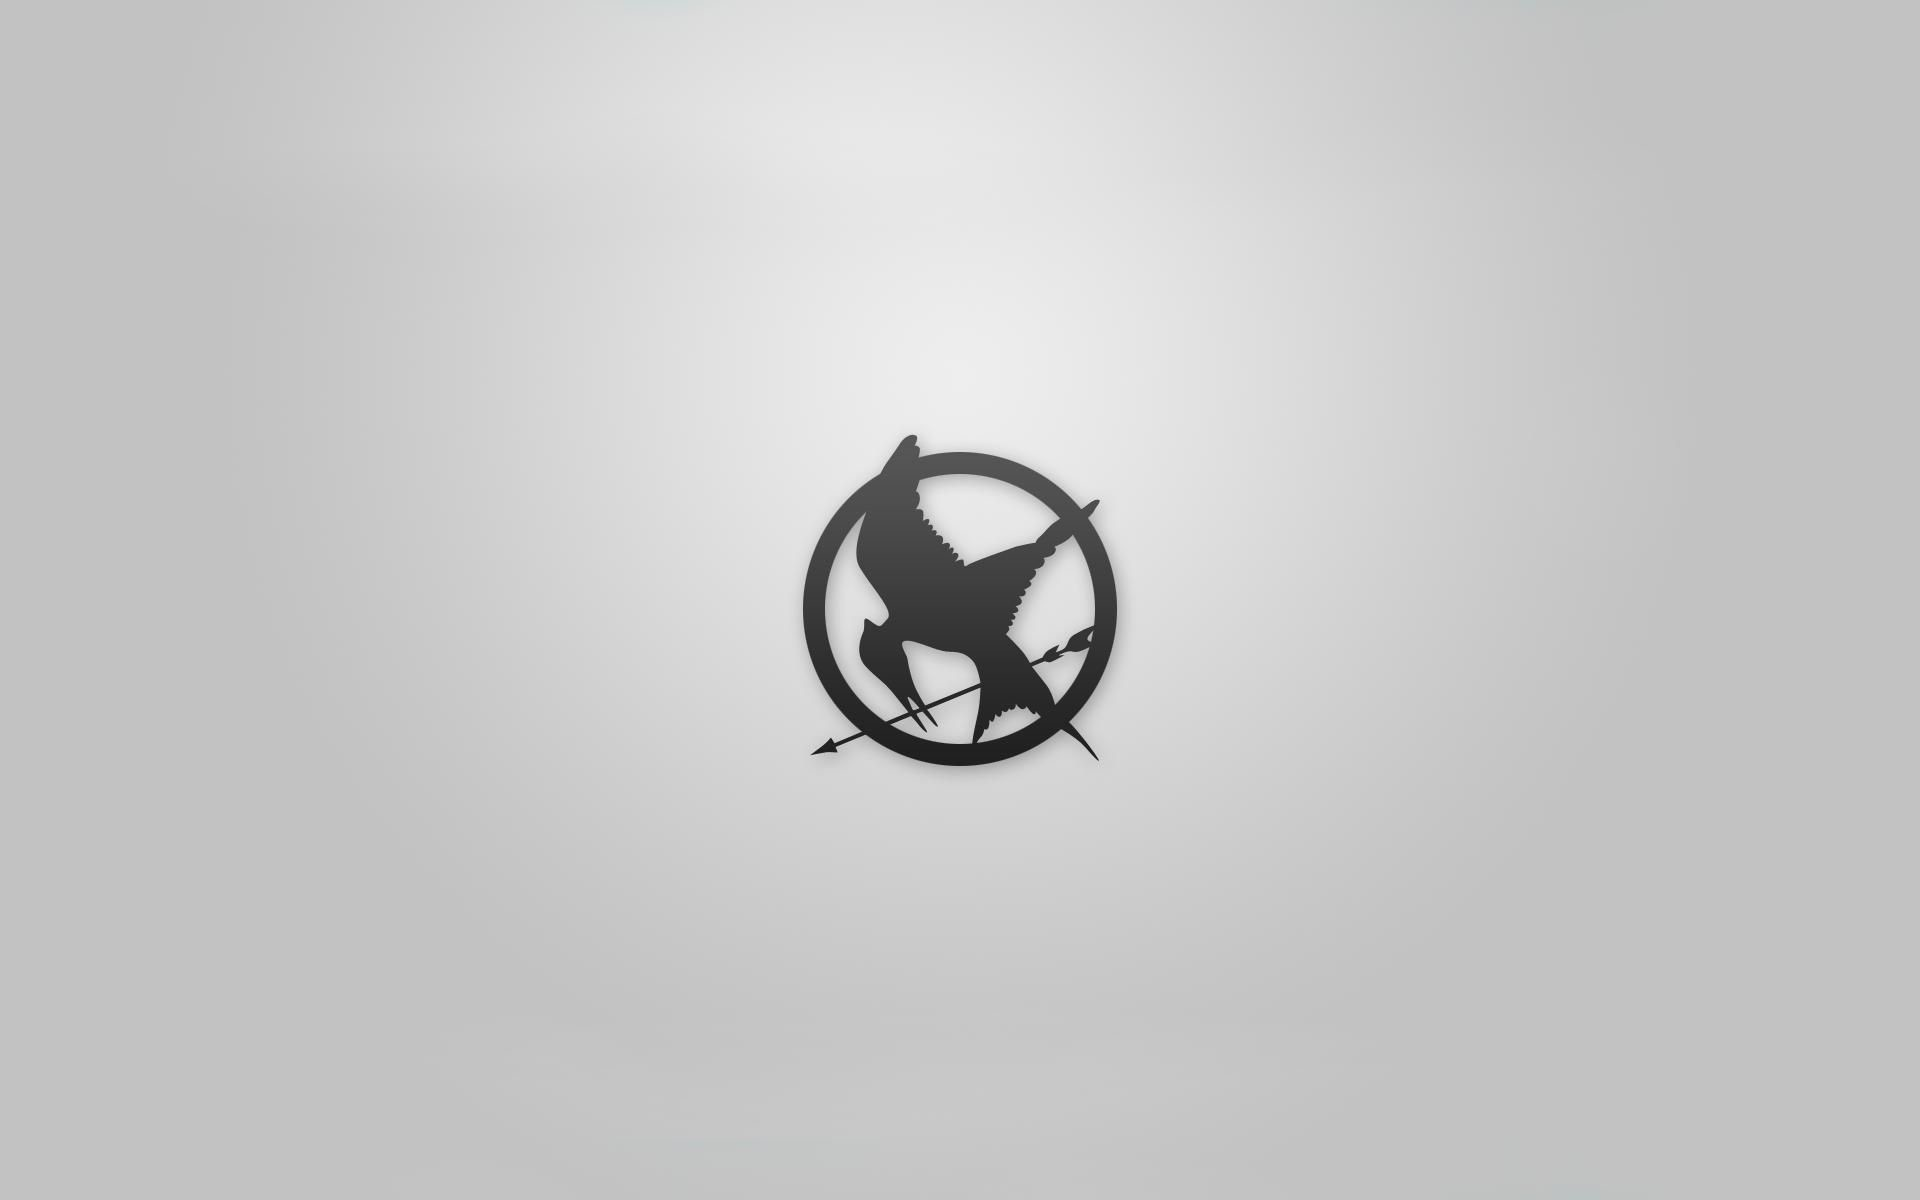 1920x1200 The Hunger Games Phone Wallpaper